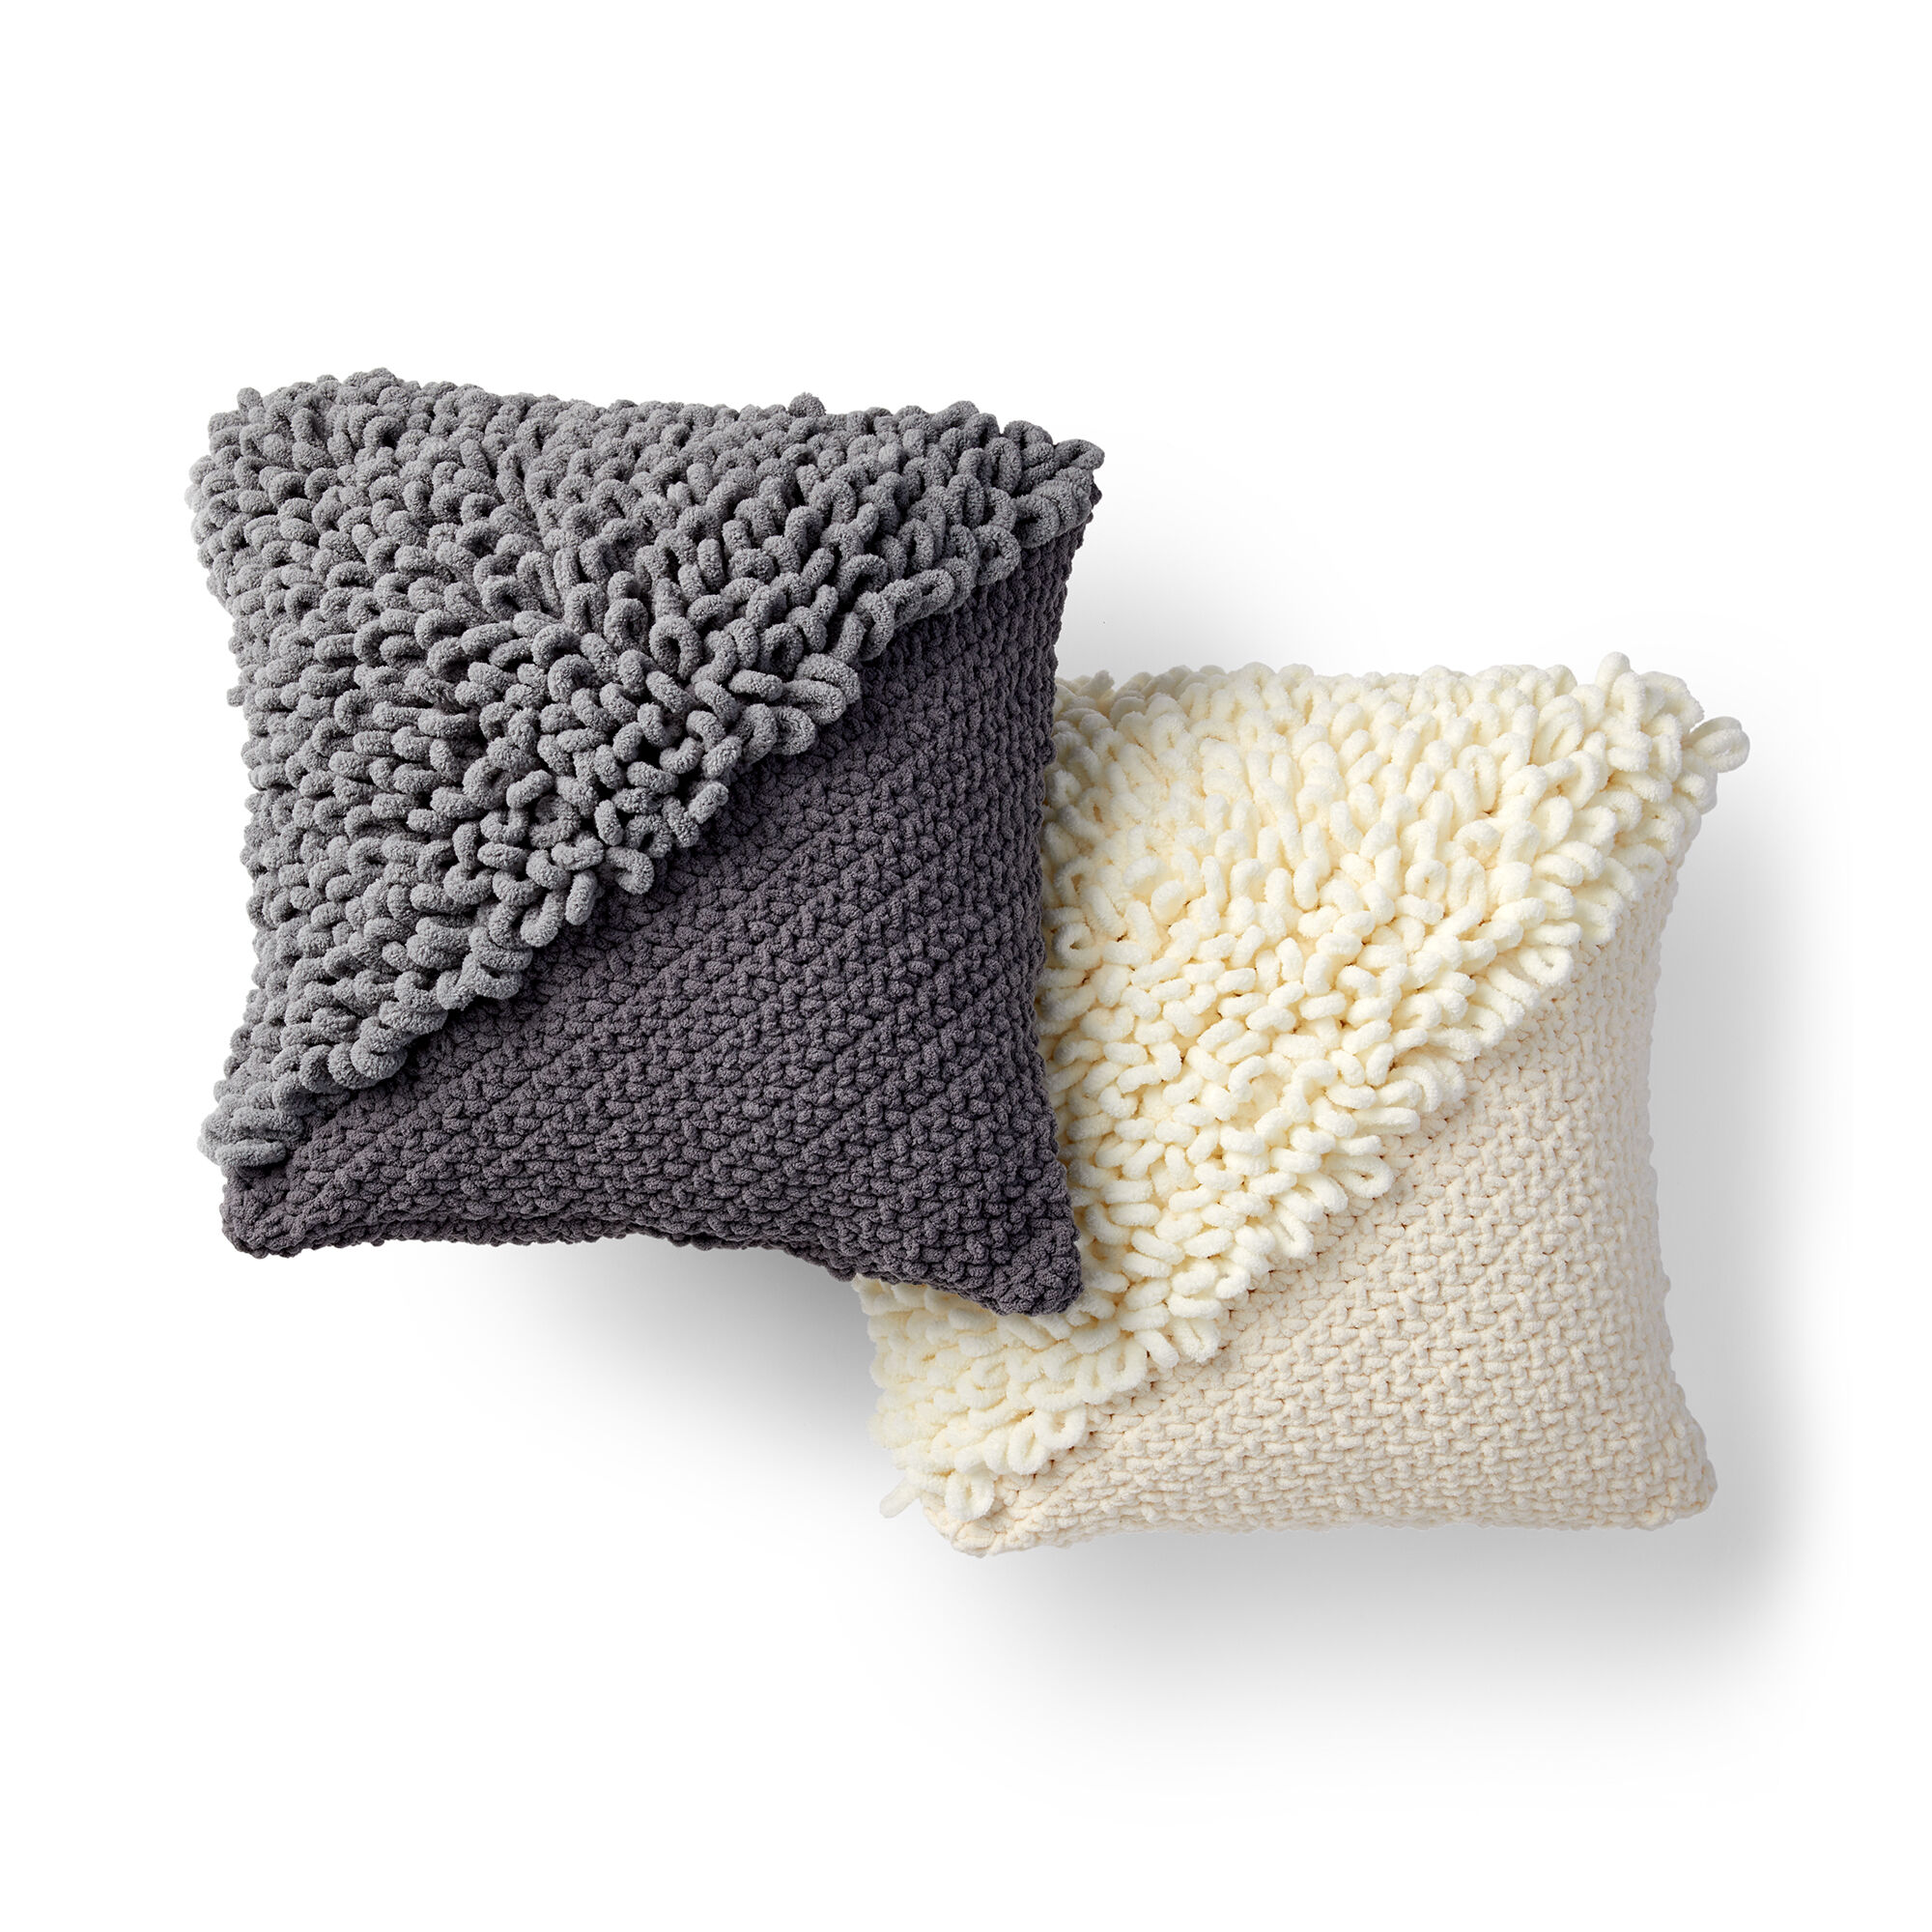 Bernat Alize Loopy Corner Crochet Pattern Pillow Yarnspirations